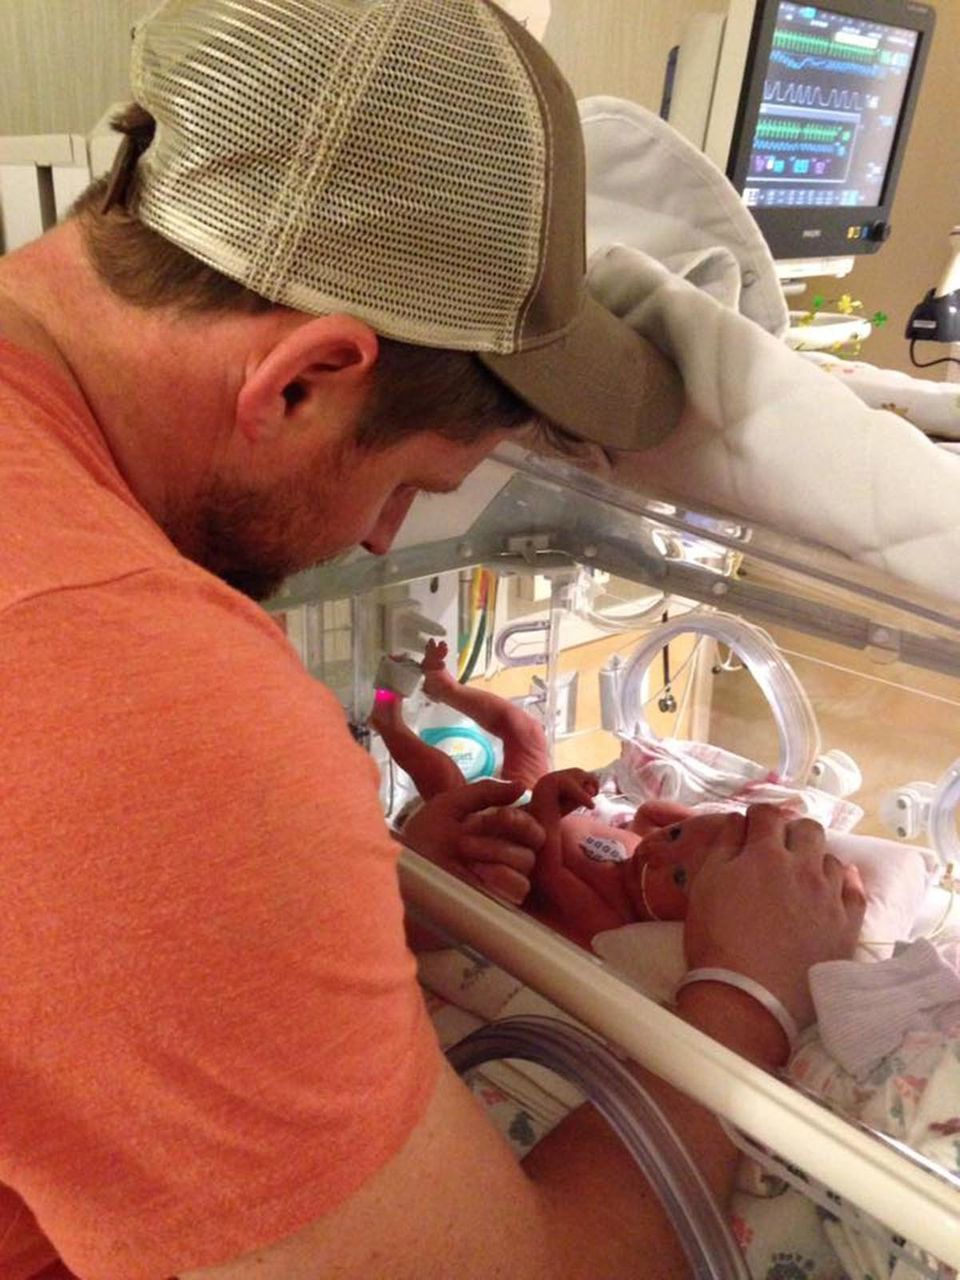 77 Emotional Photos Of Preemie Parents With Their Babies In NICU ... d4156e627dfd